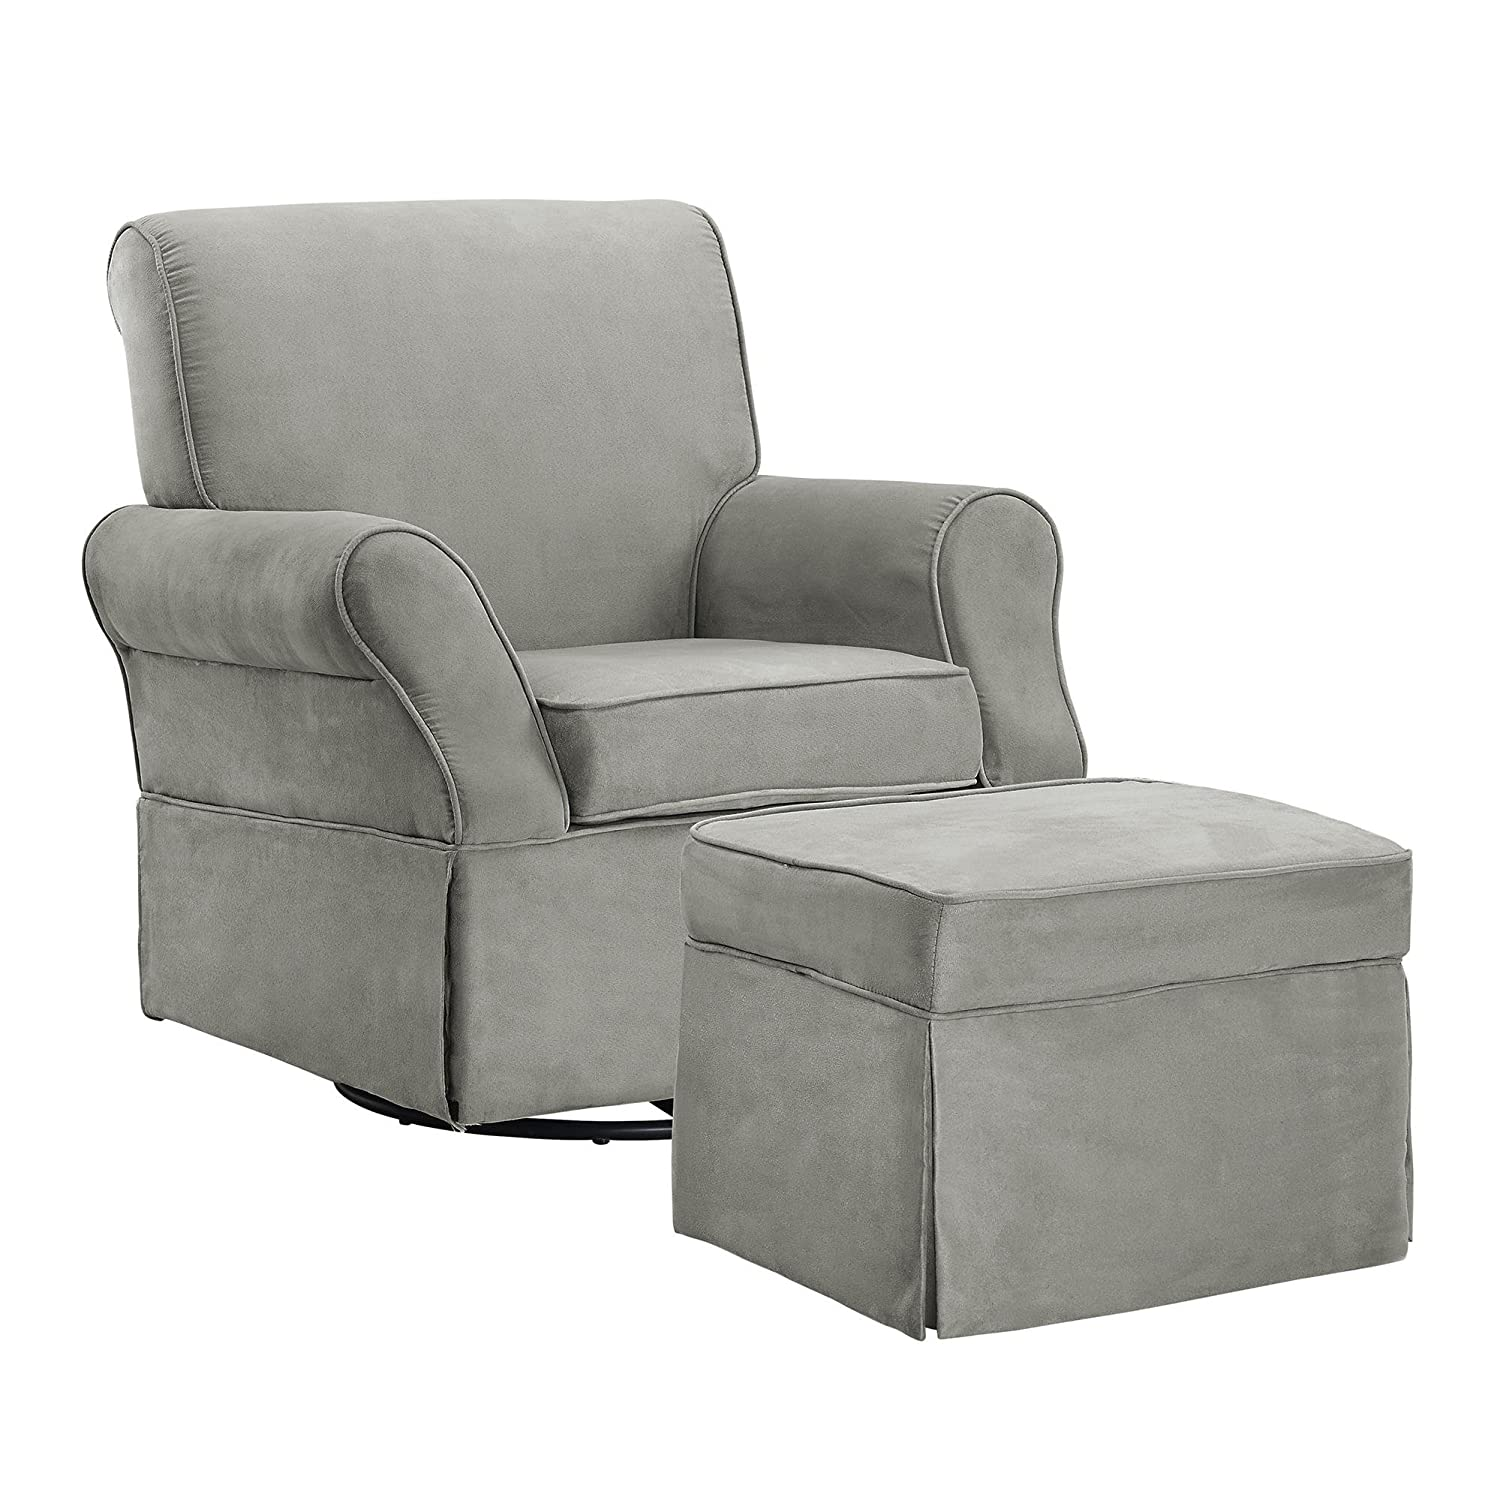 set recliner hoop cymun ottoman thenurseries nursery craft grey black navy with and glider rocking chair stork gray castle baby designs little